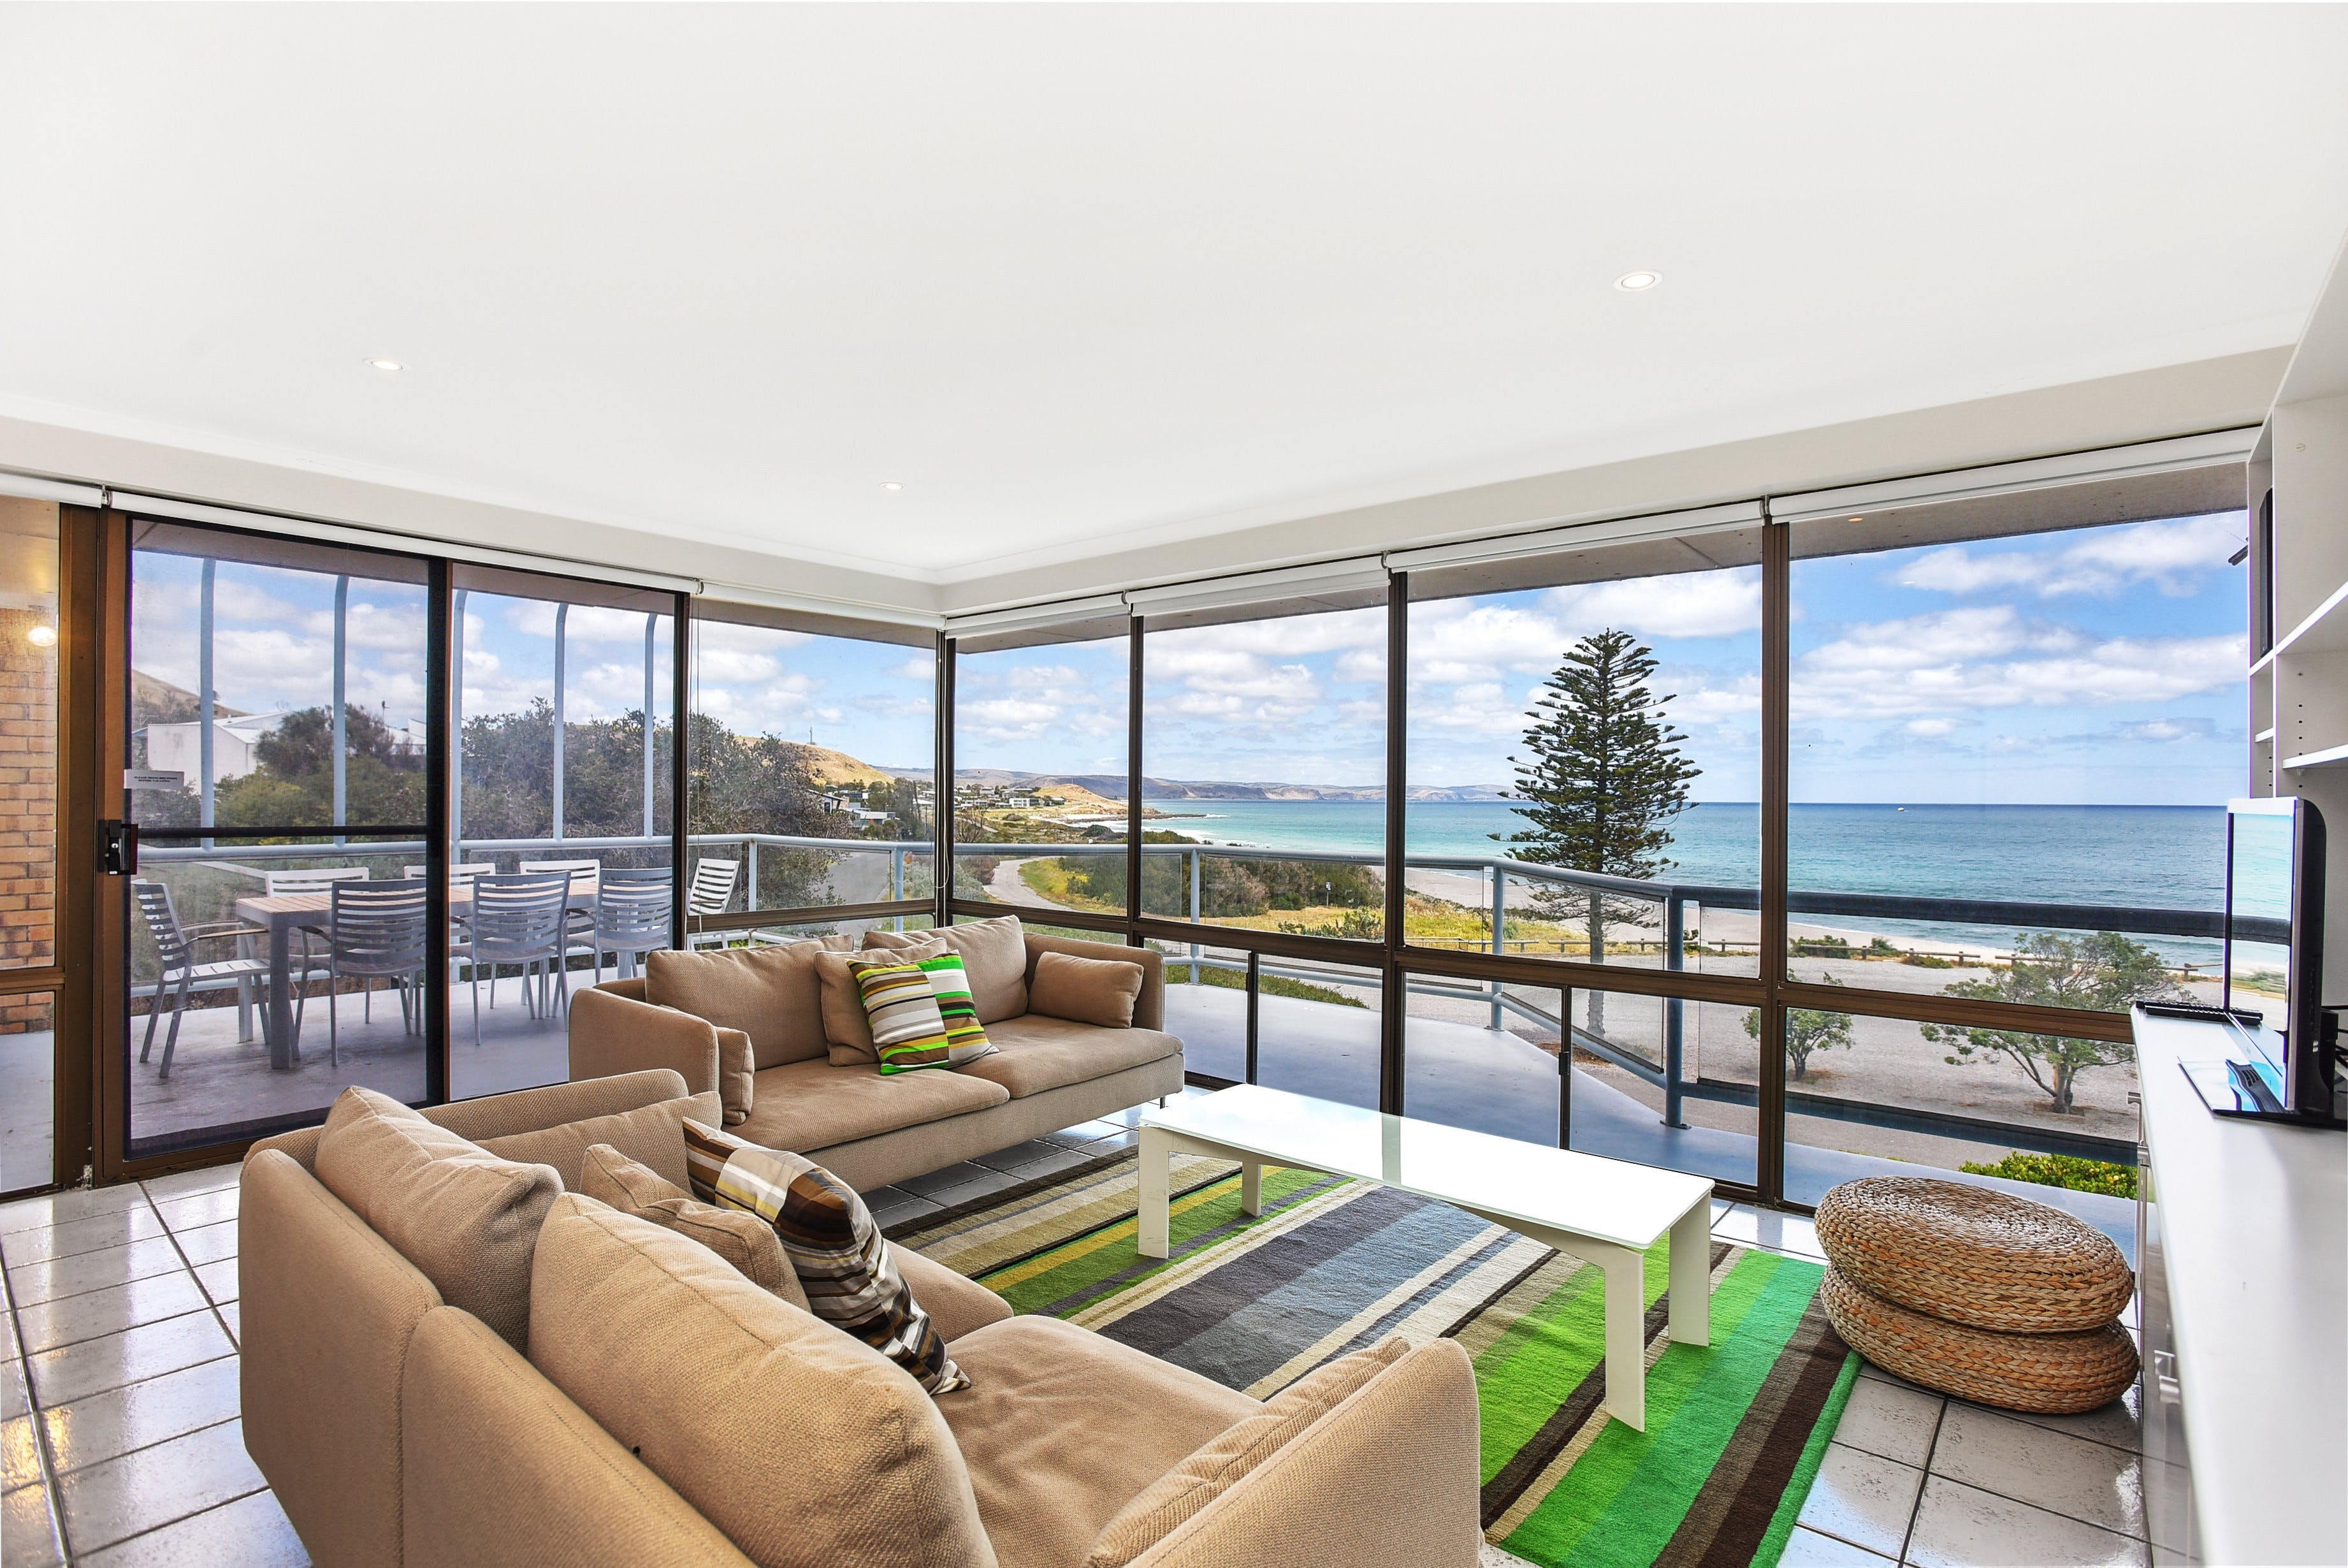 2/101 Gold Coast Drive Carrickalinga - Whitsundays Tourism